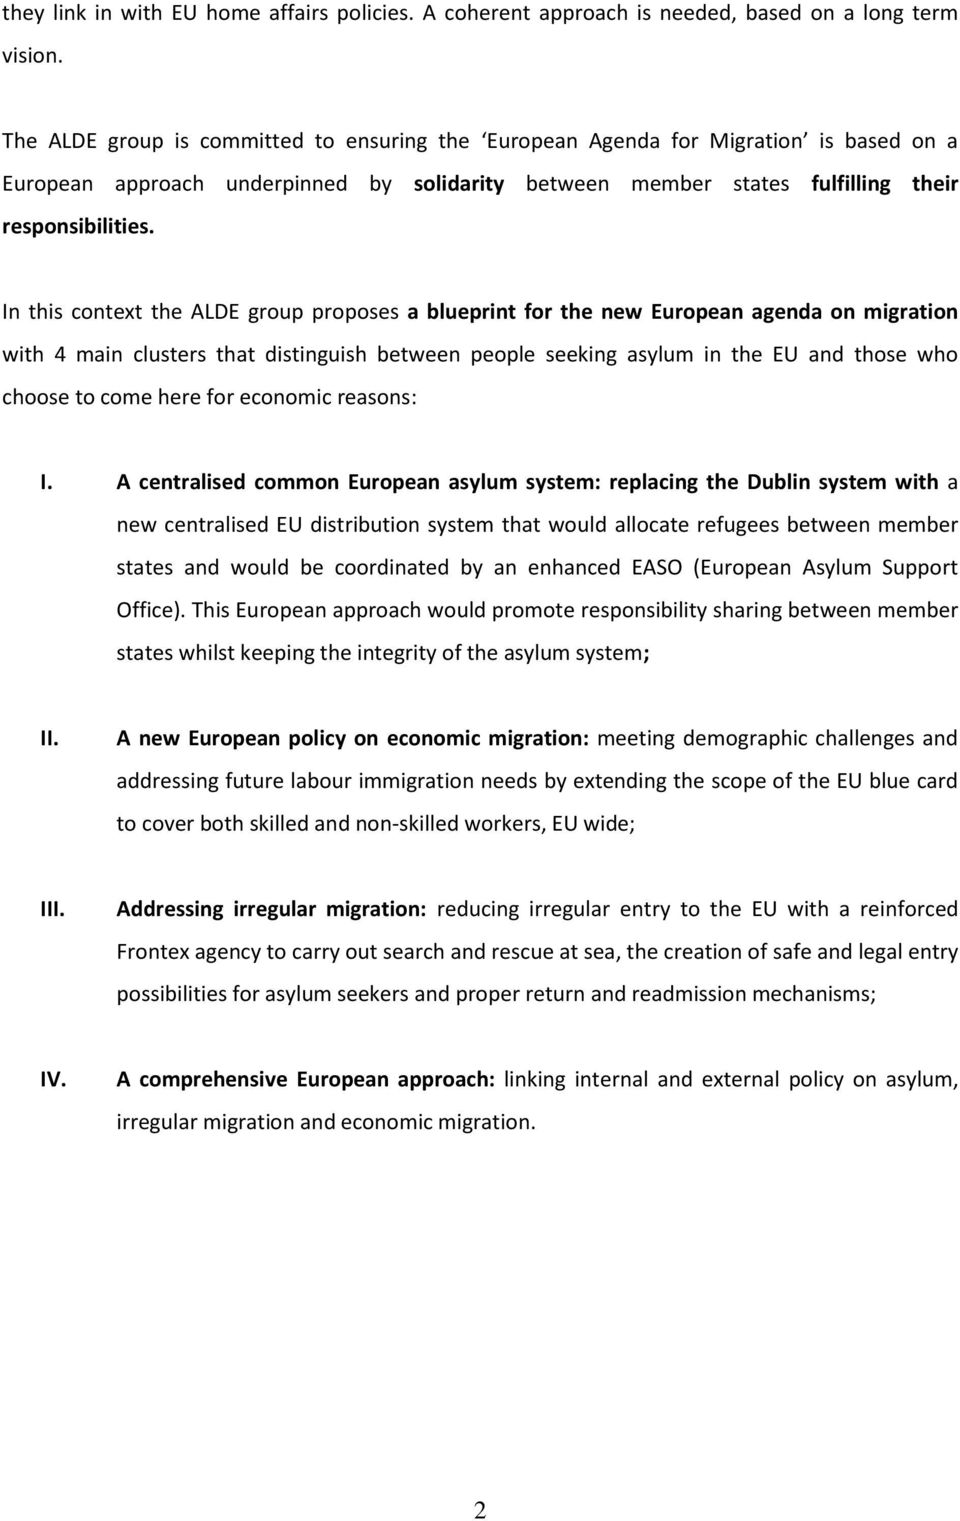 In this context the ALDE group proposes a blueprint for the new European agenda on migration with 4 main clusters that distinguish between people seeking asylum in the EU and those who choose to come